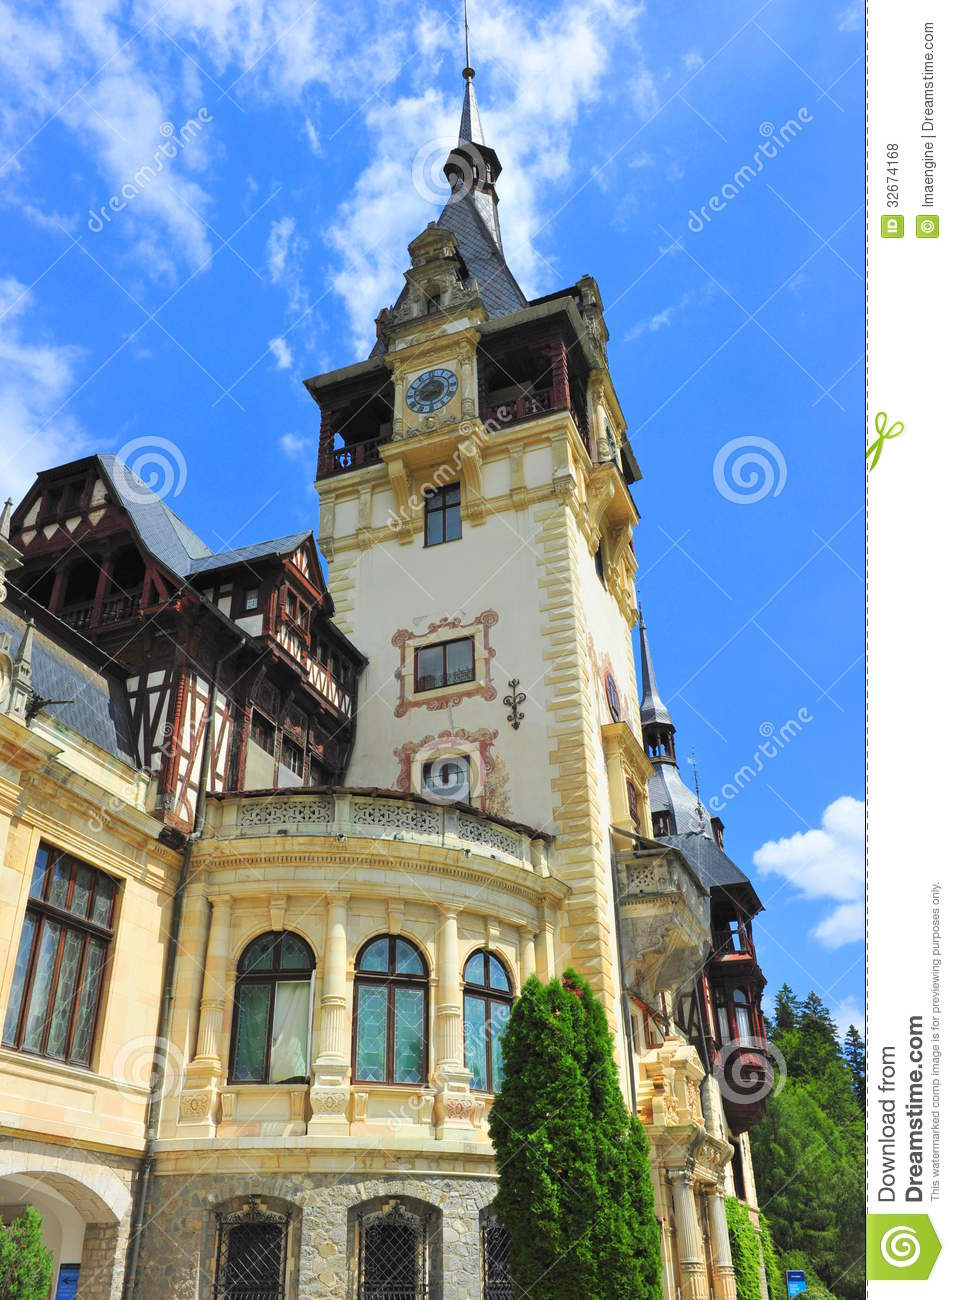 Baroque architectural style of peles castle stock photo for Baroque architecture elements